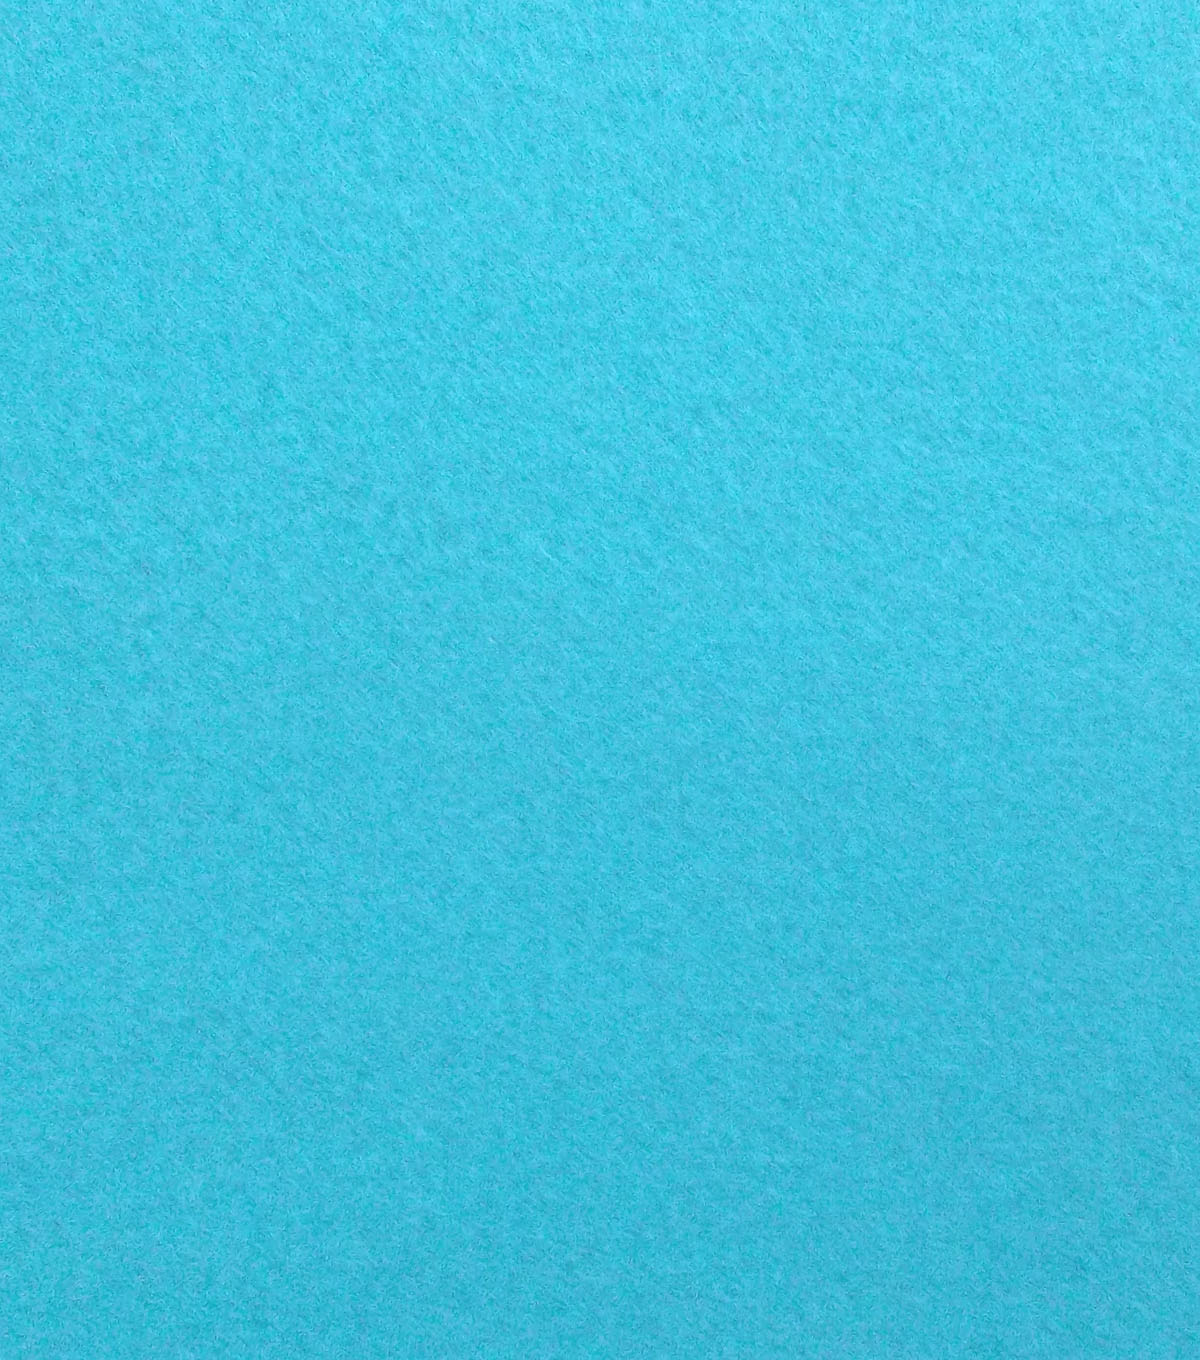 Blizzard Fleece Fabric -Solids, Capri Breeze